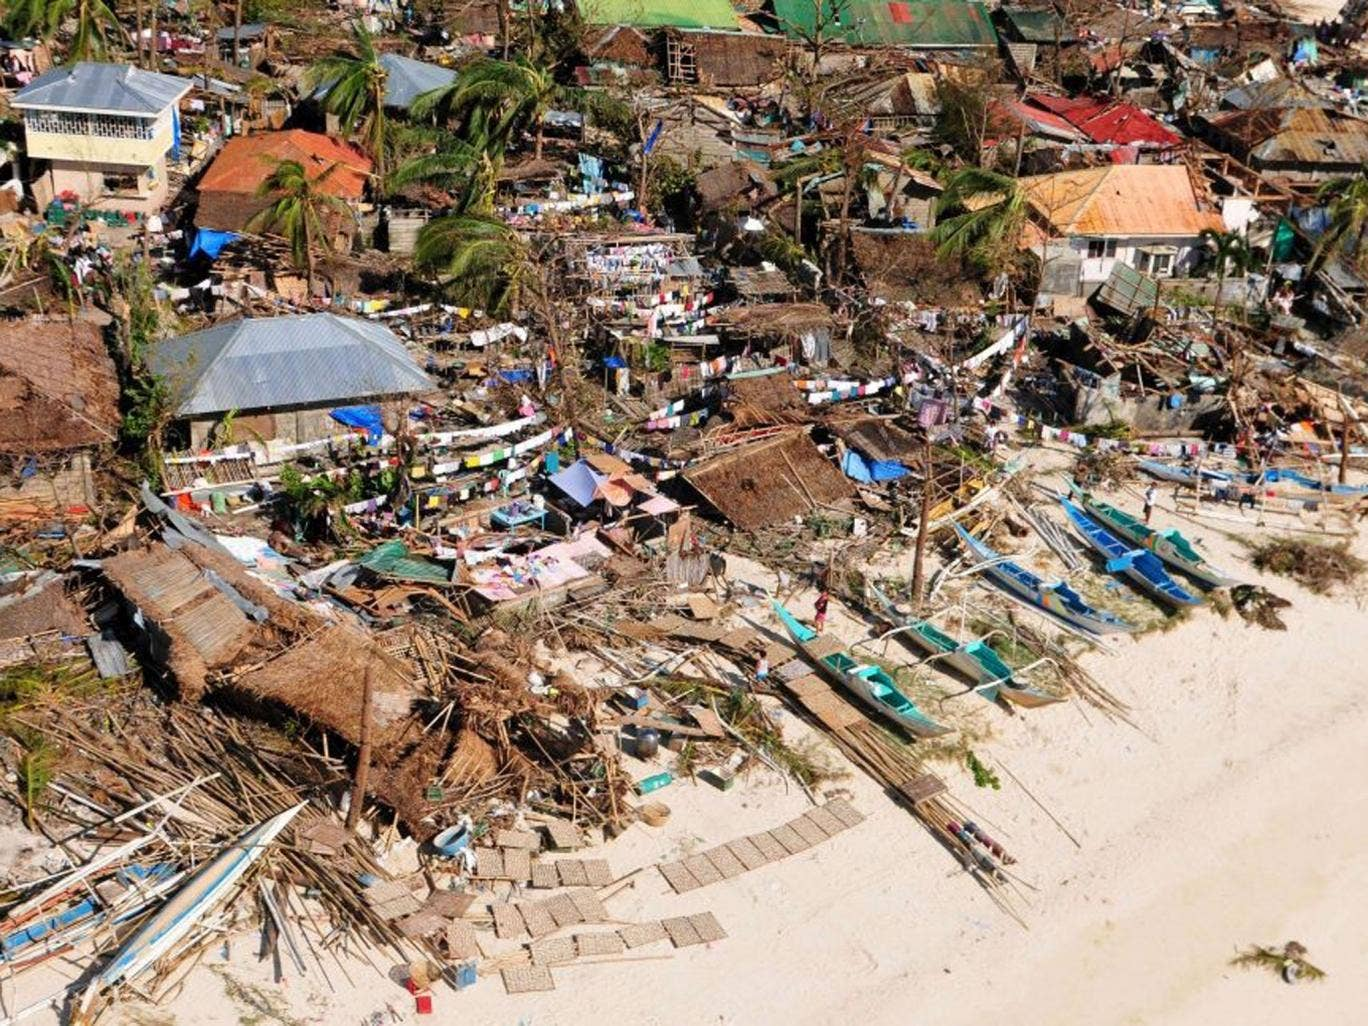 Devastation: The scene in Tacloban in central Philippines after it was hit by Haiyan